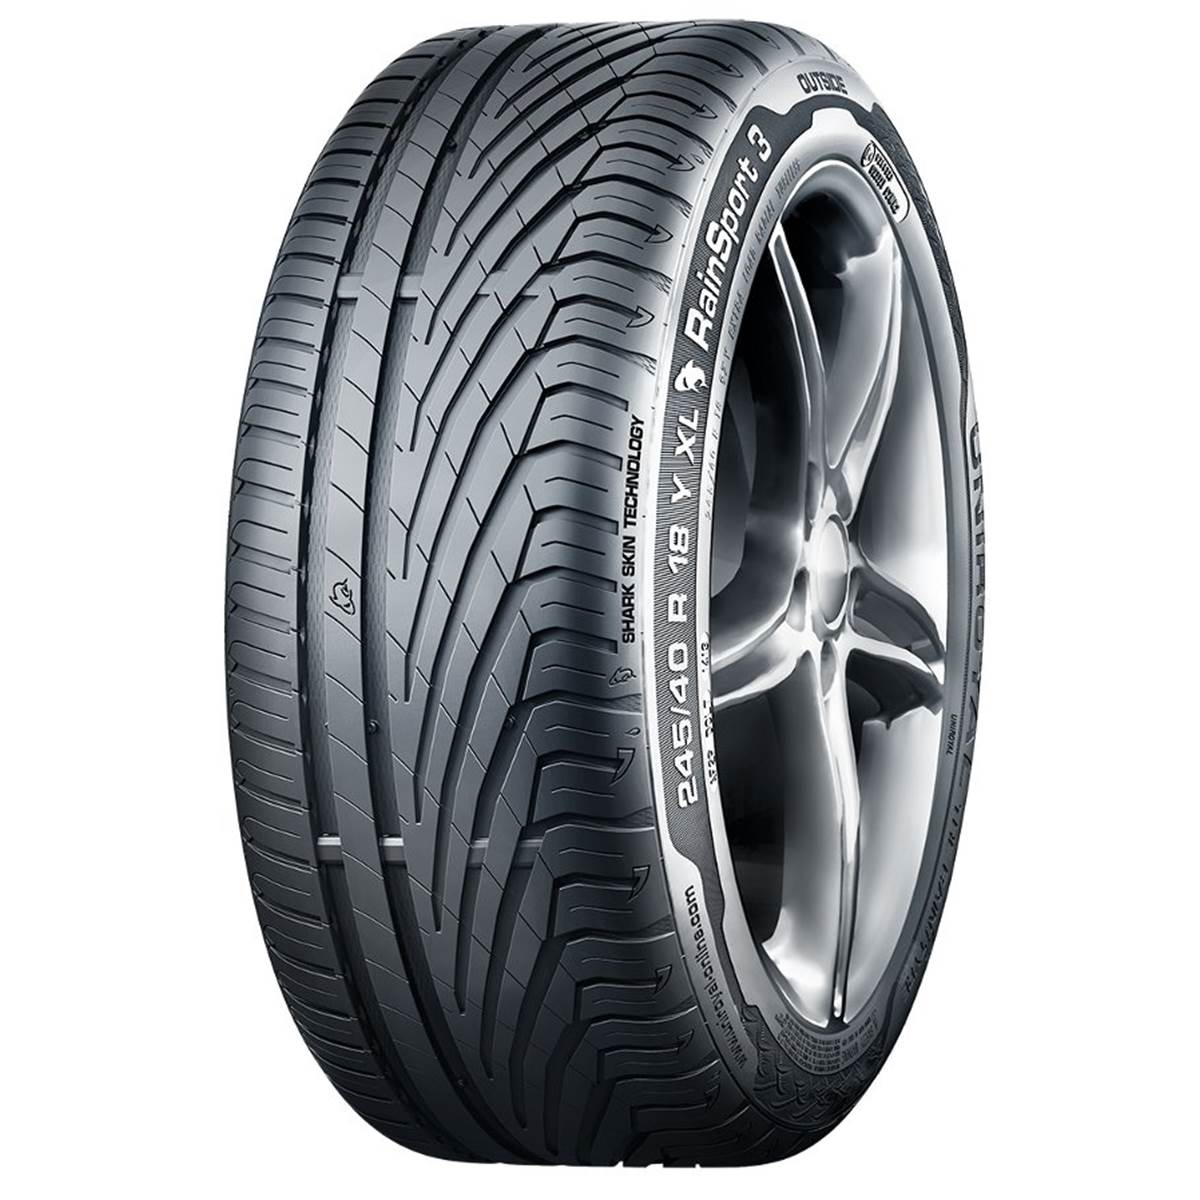 Pneu UNIROYAL 255/35R19 96Y RainSport 3 XL